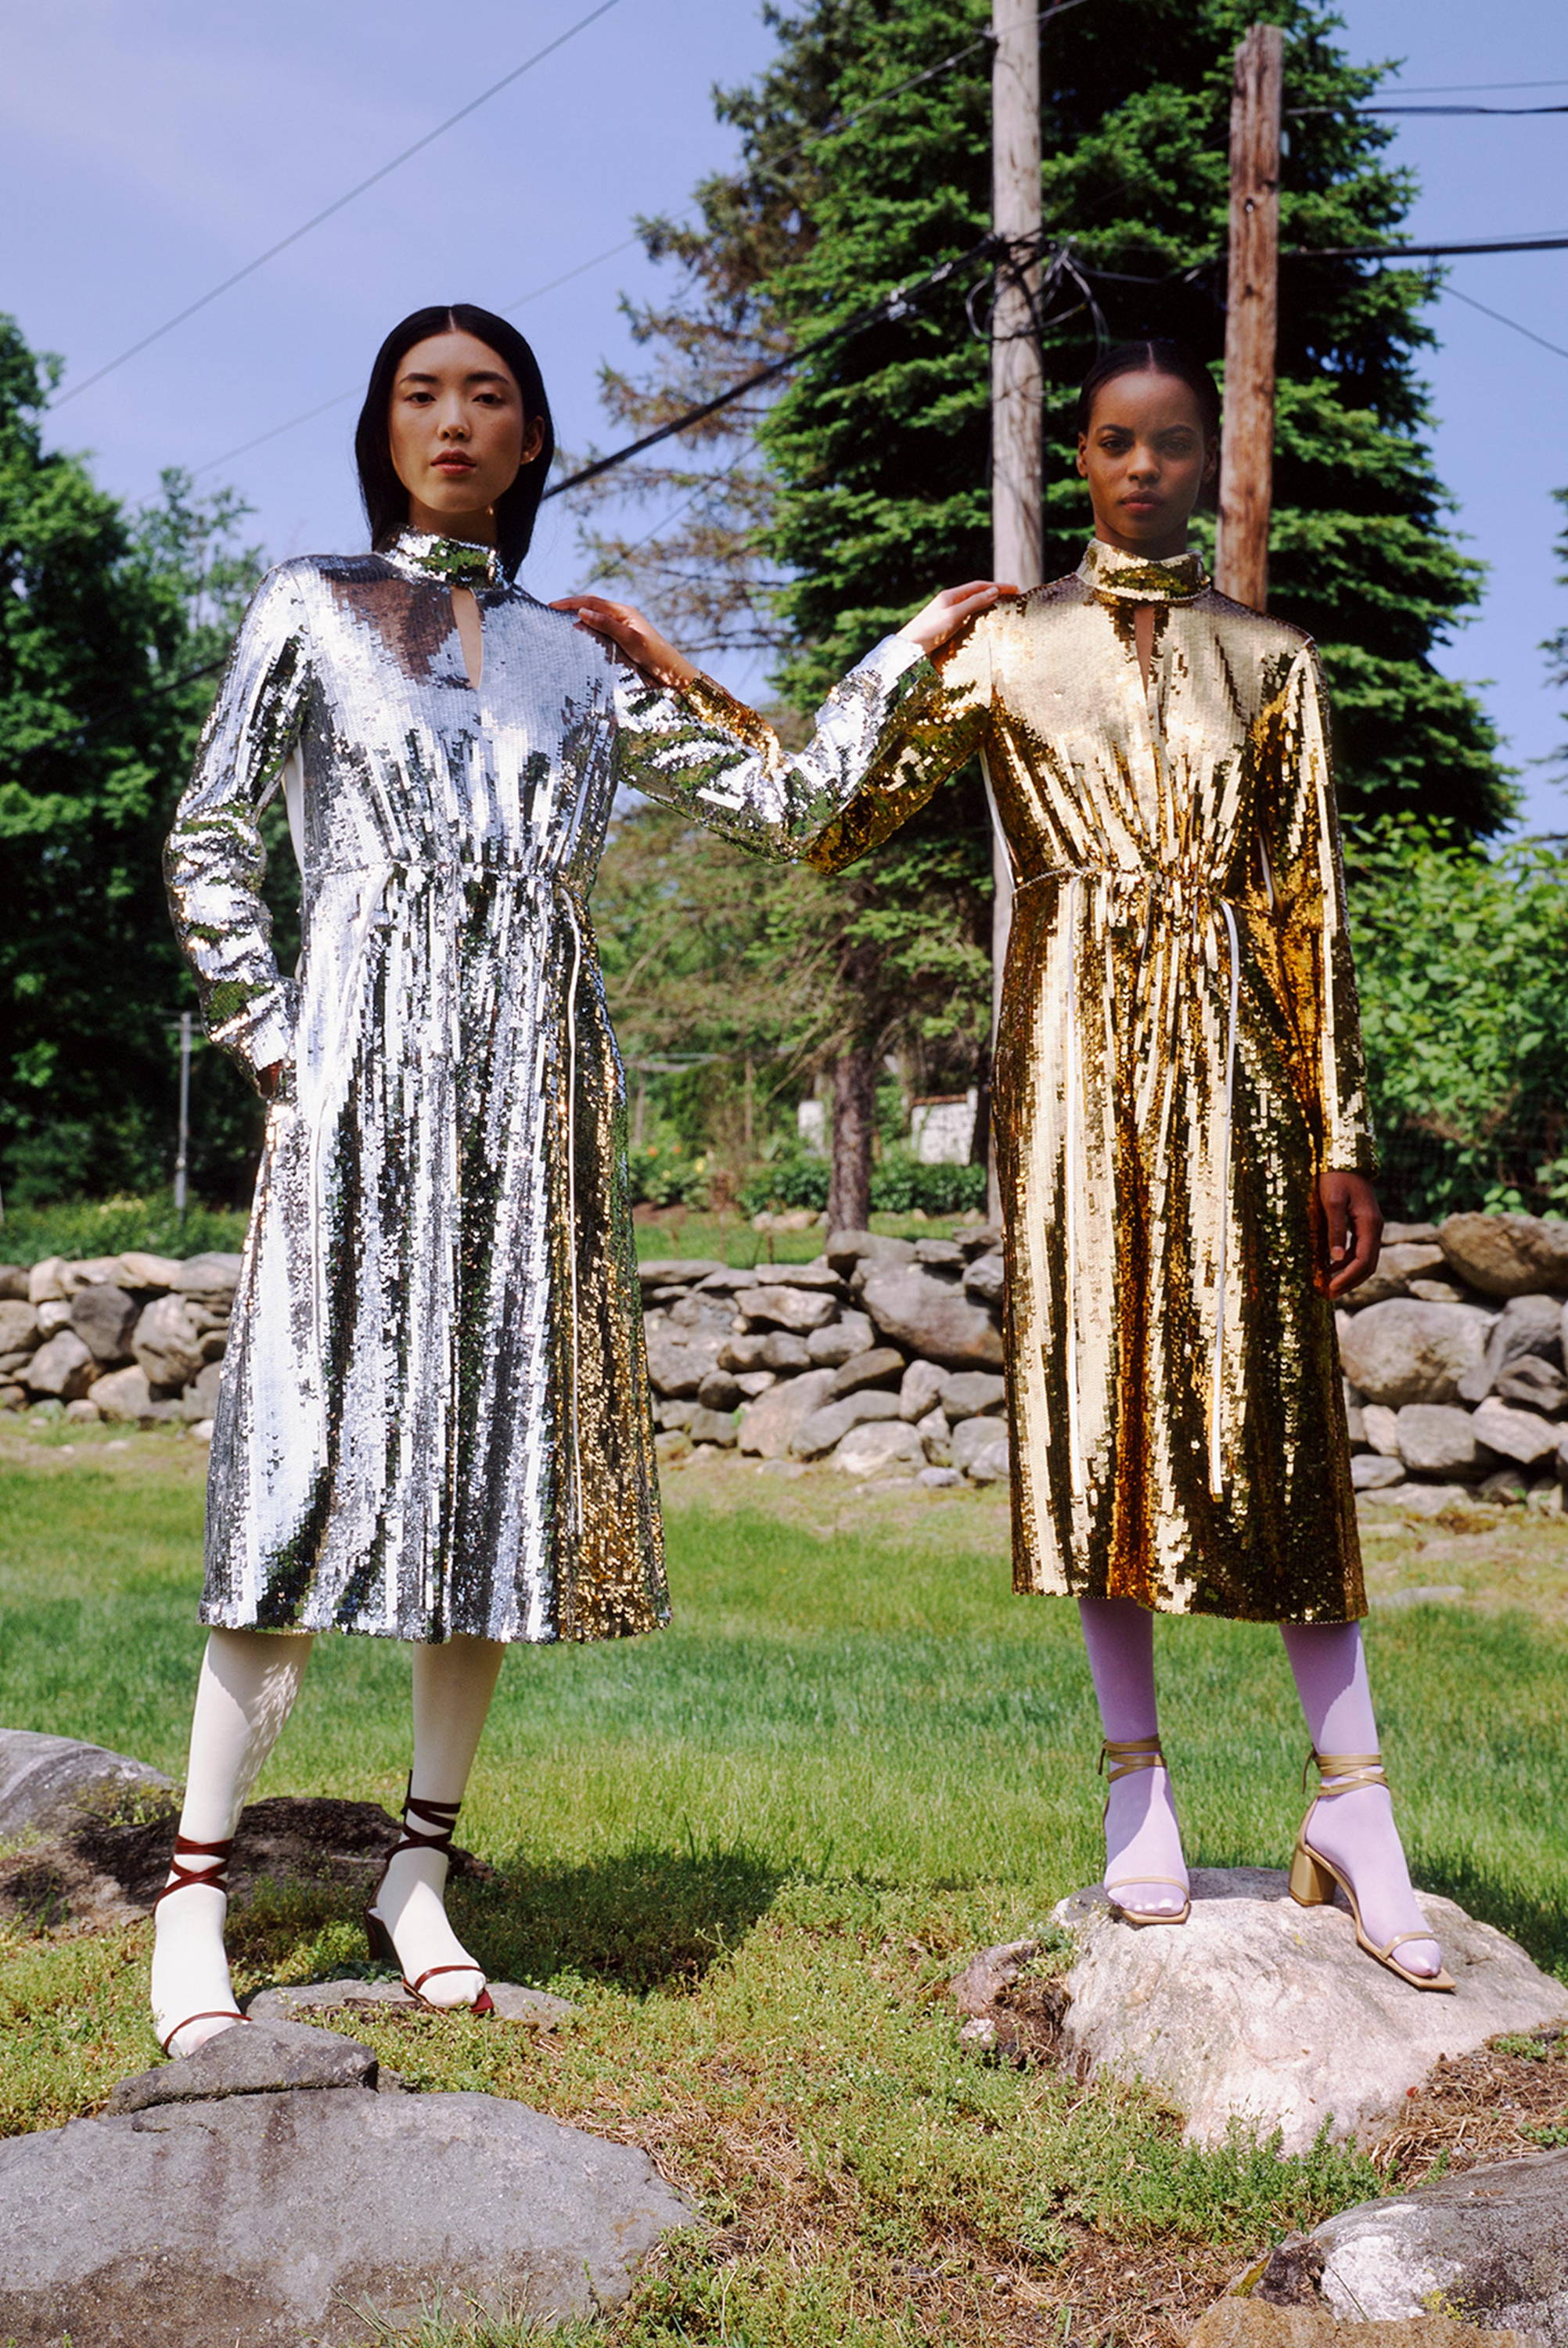 Two models wearing sequin dresses while standing on rocks.